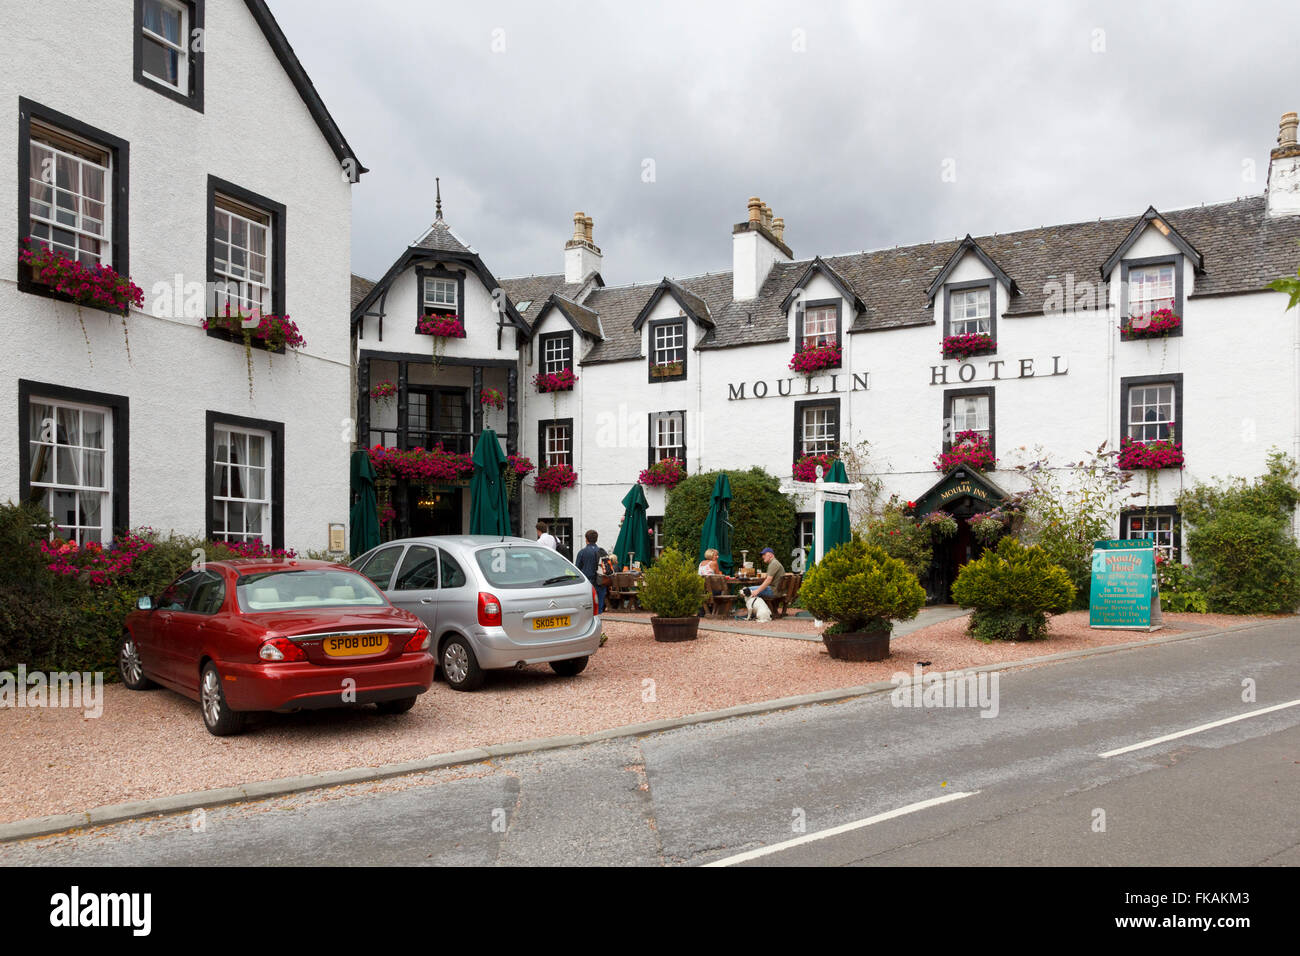 The Moulin Hotel in the village of Moulin just  outside the town of Pitclochry in Perthshire, Scotland. - Stock Image